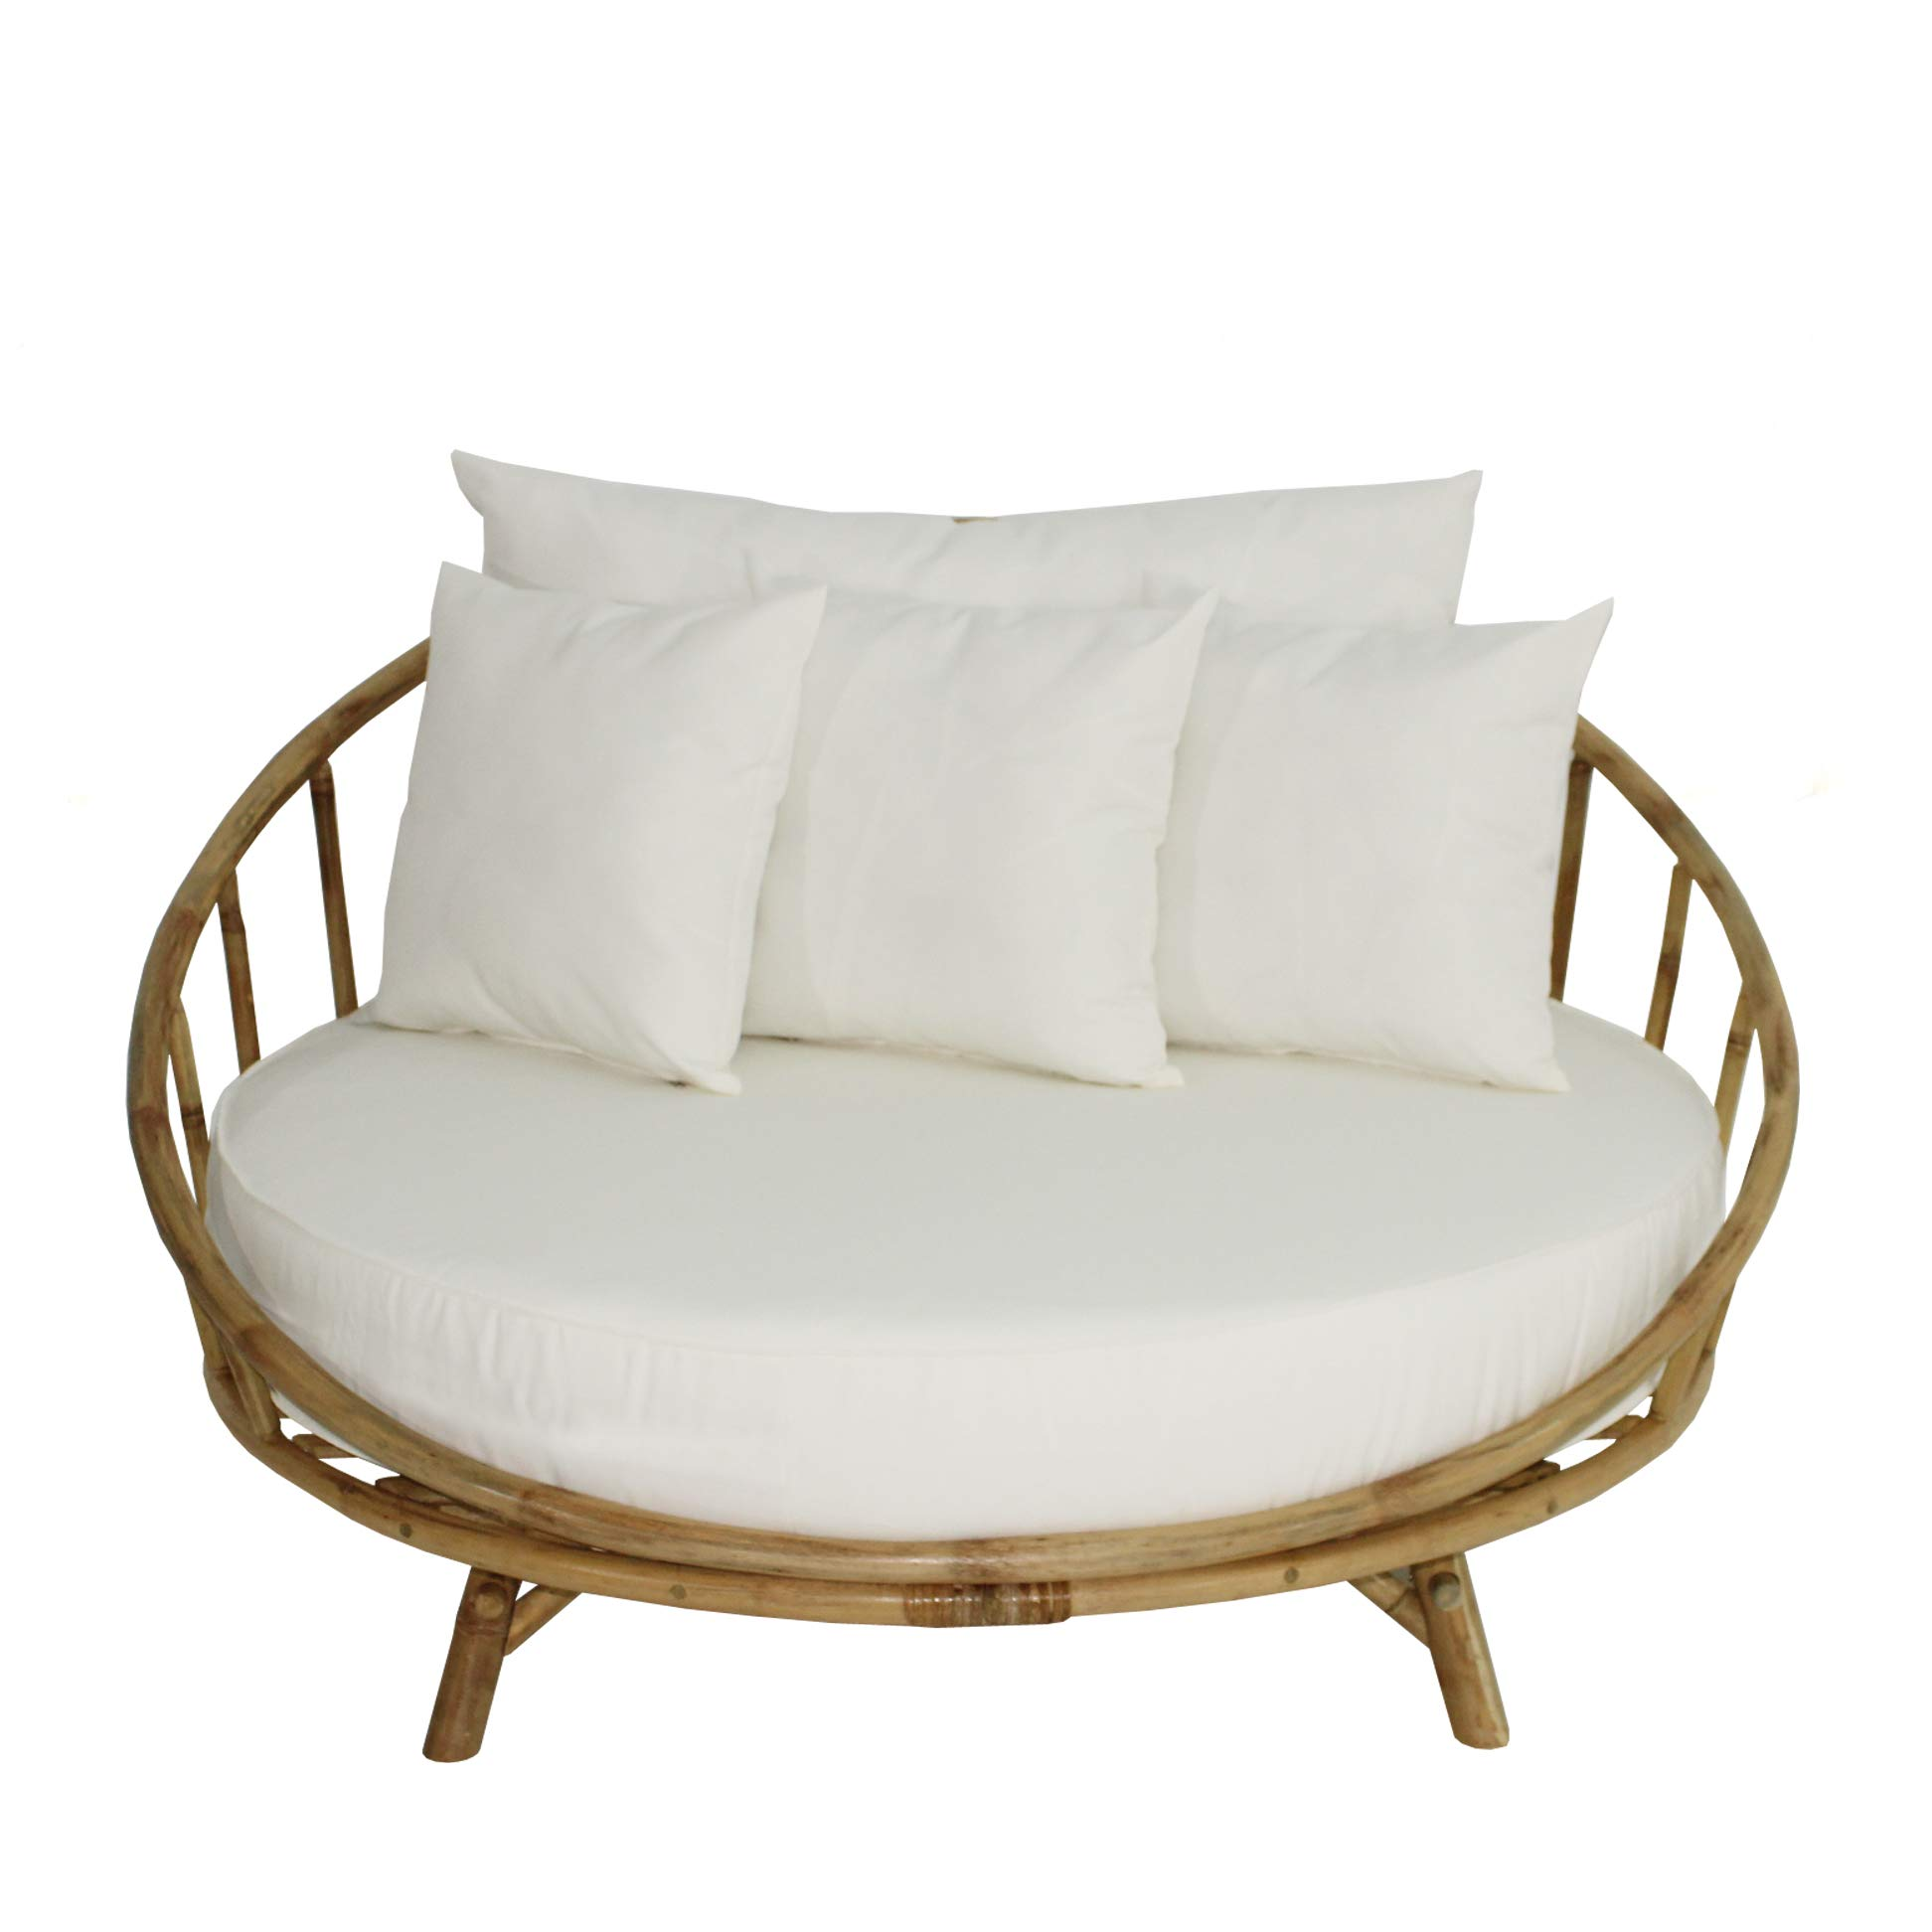 ZEW Bamboo Round Daybed Outdoor Indoor Large Accent Sofa Chair Lawn Pool Garden Seating with Cushion and Pillows Sofabed, Natural